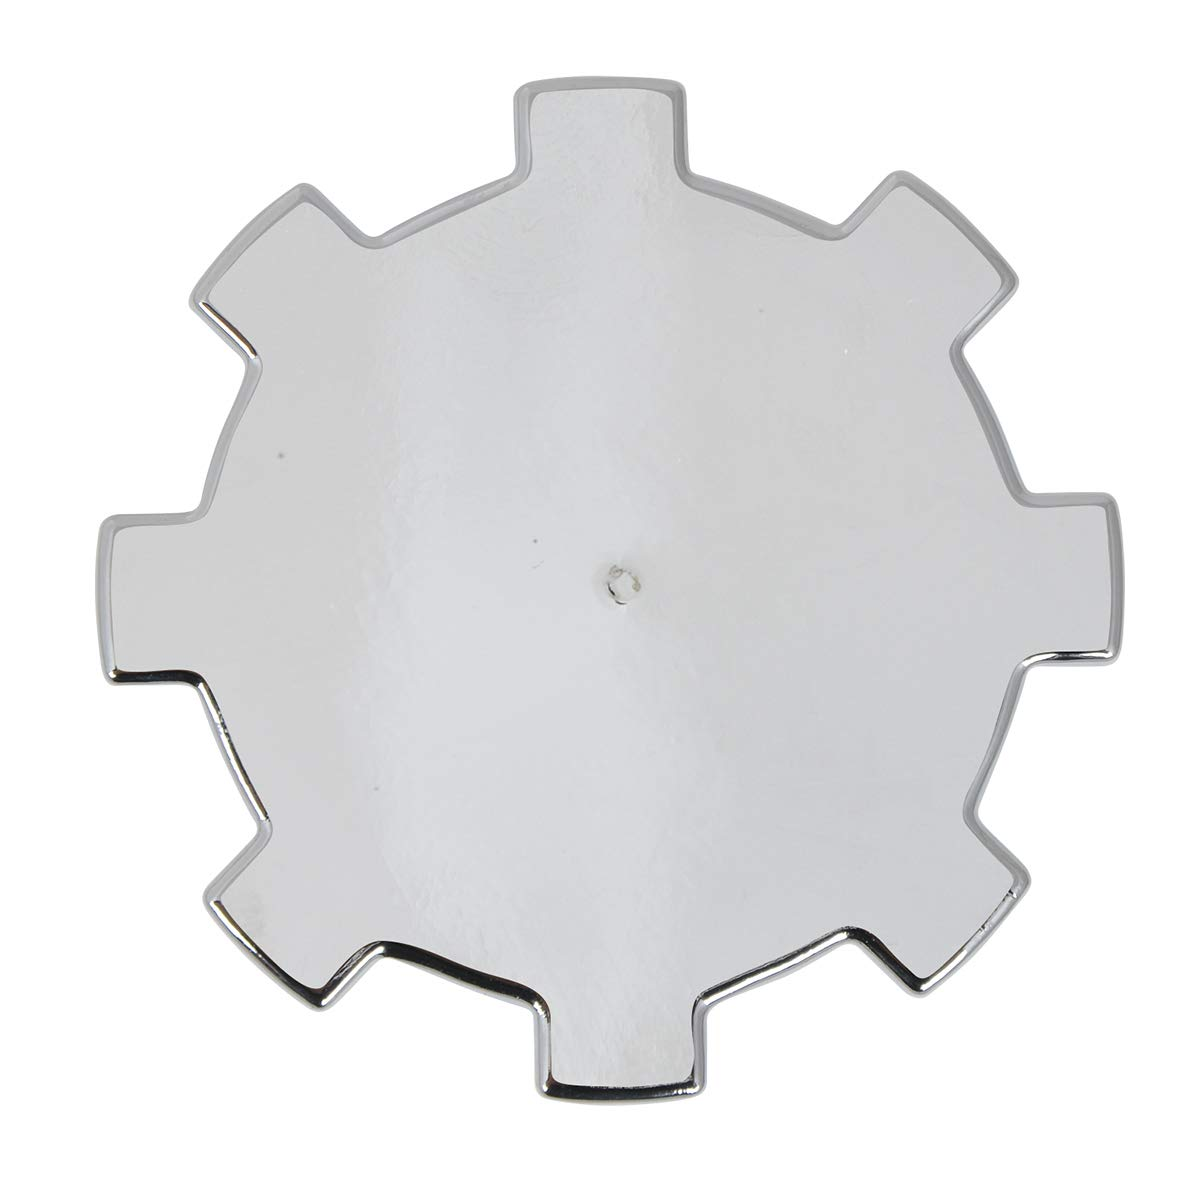 Trailers and More Grand General 10223SP Chrome Plastic 33mm Gear Screw-On Nut Cover for Trucks